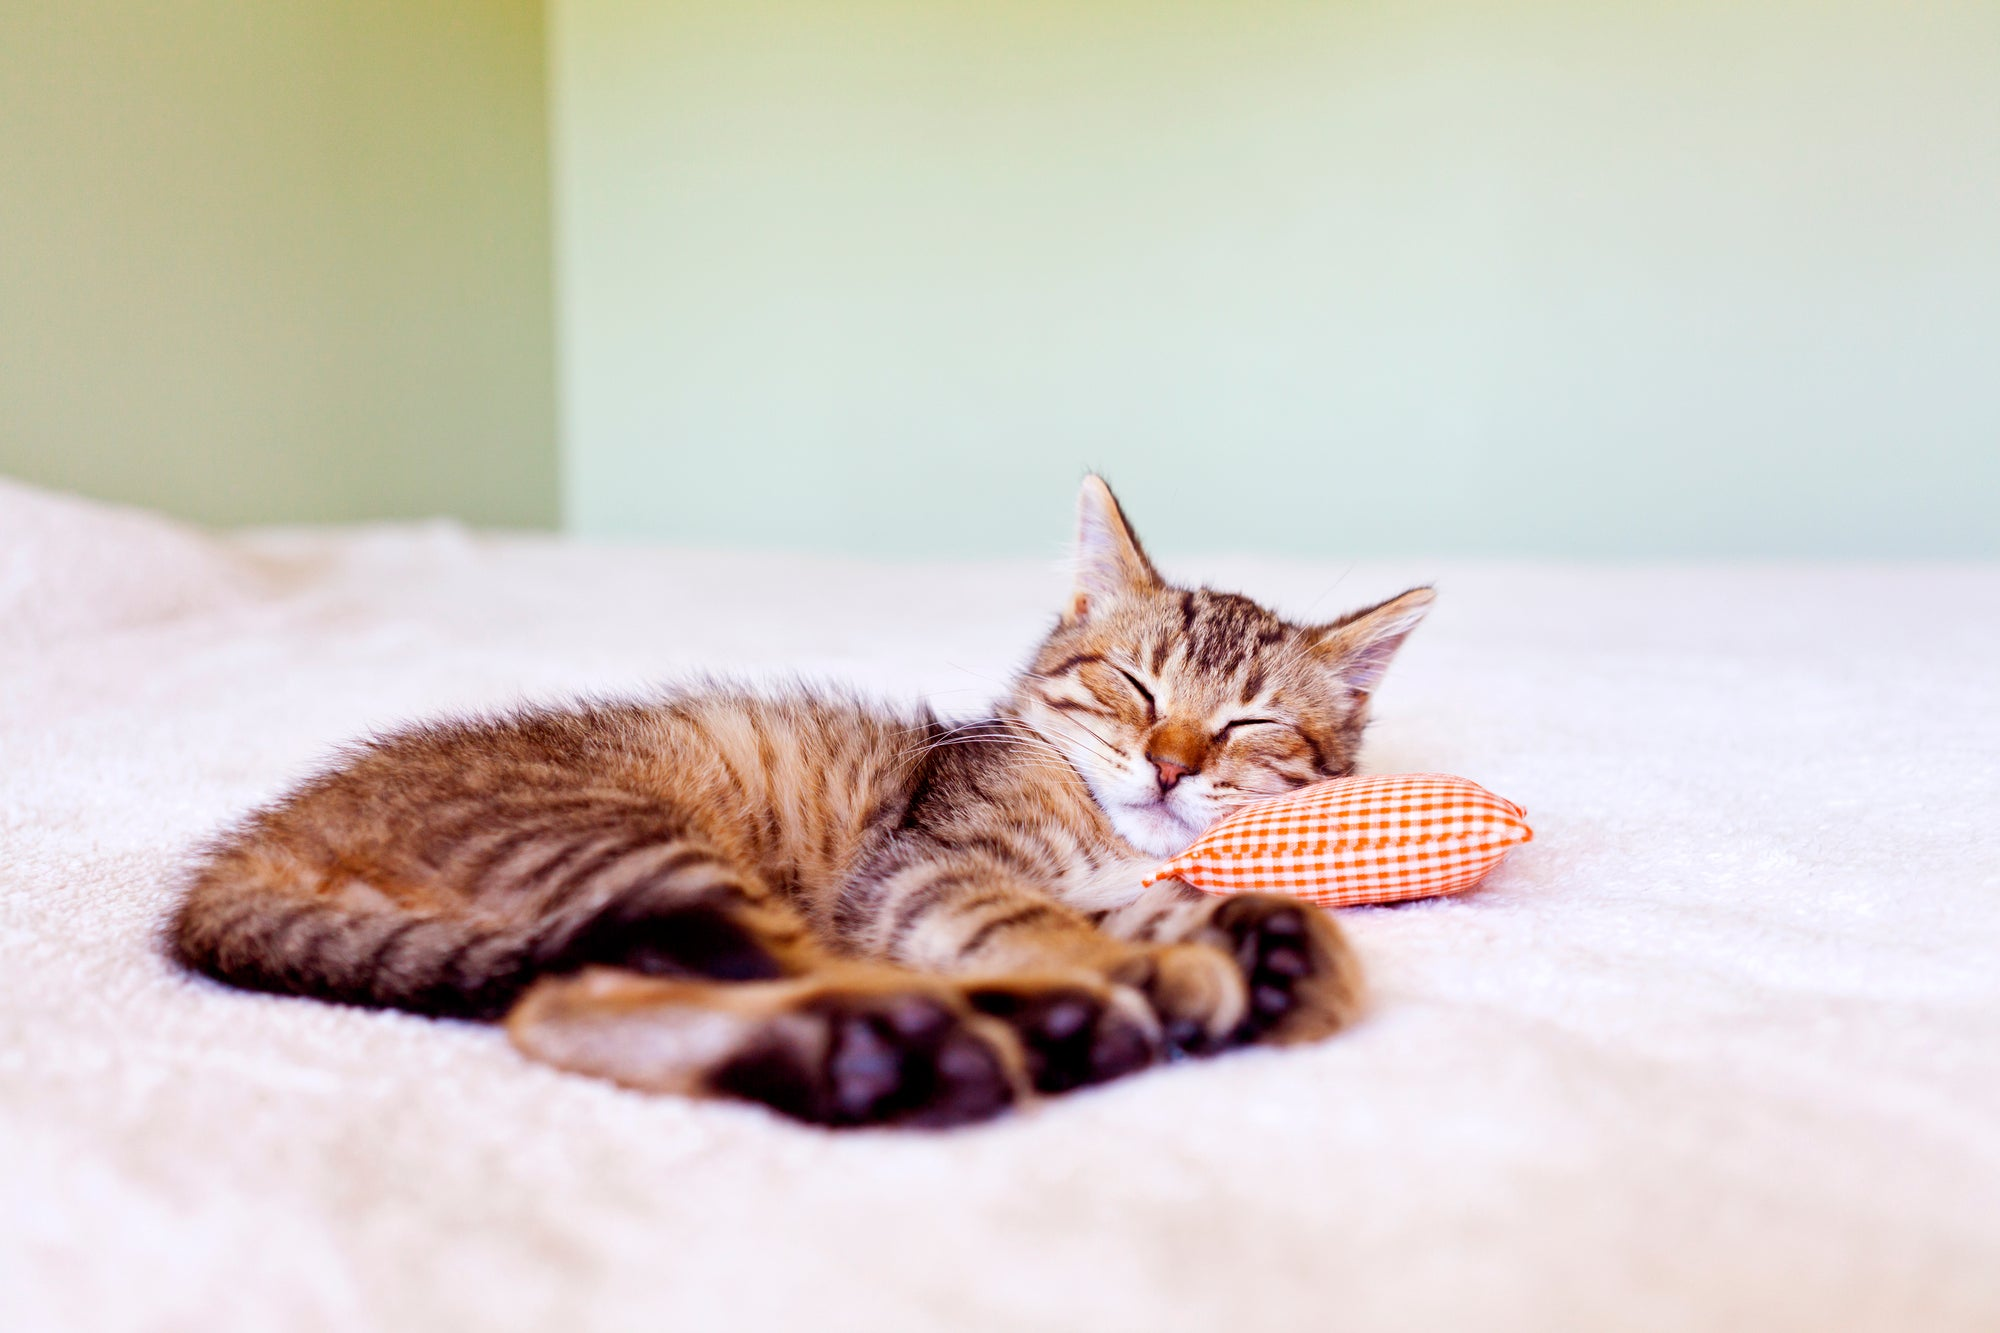 Is Your Cat Sad? Signs and Causes of Cat Depression